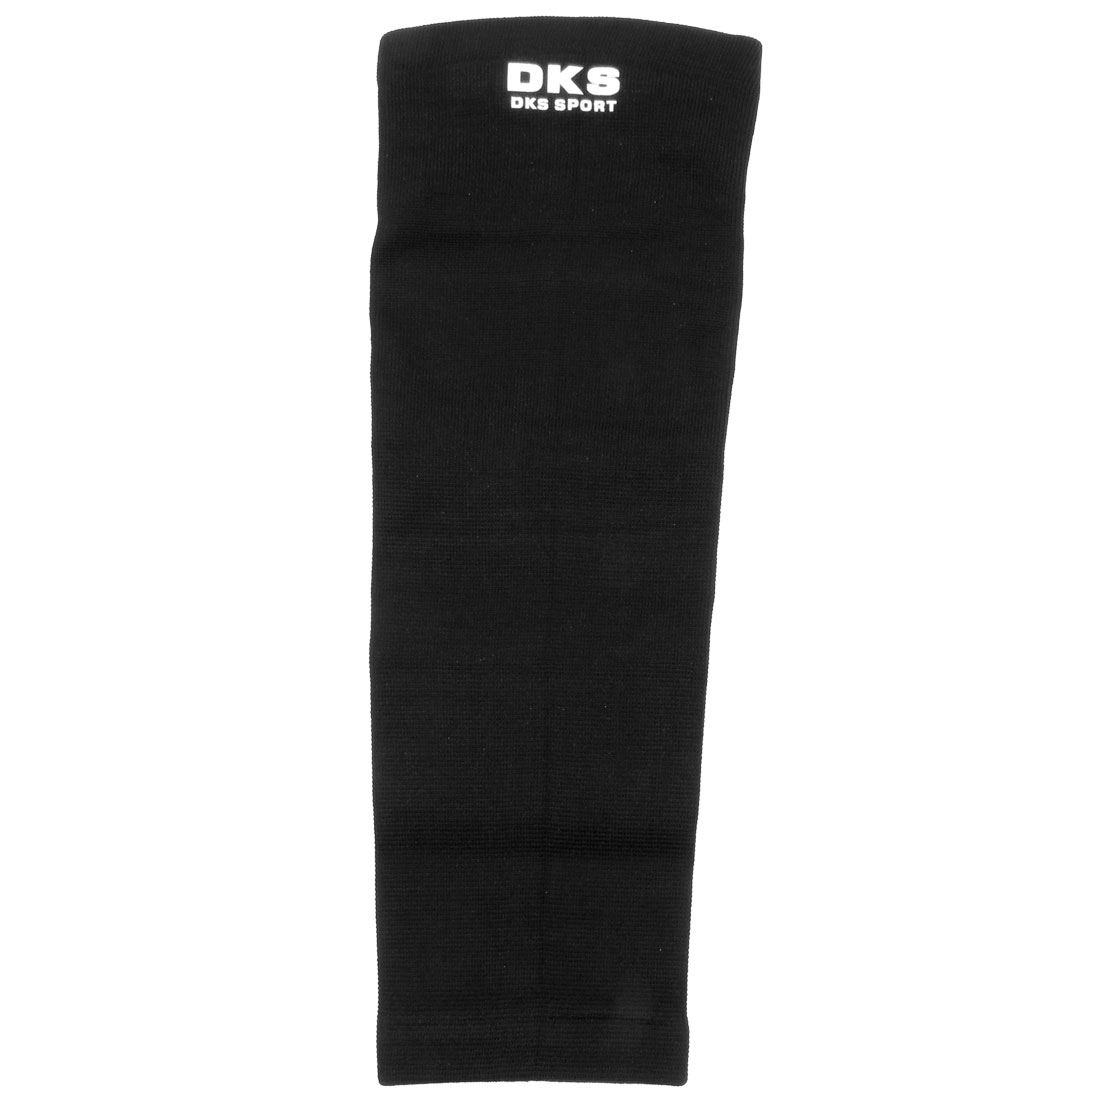 39cm Long Athletic Black Pinstripe Stretch Knee Support Brace Protector